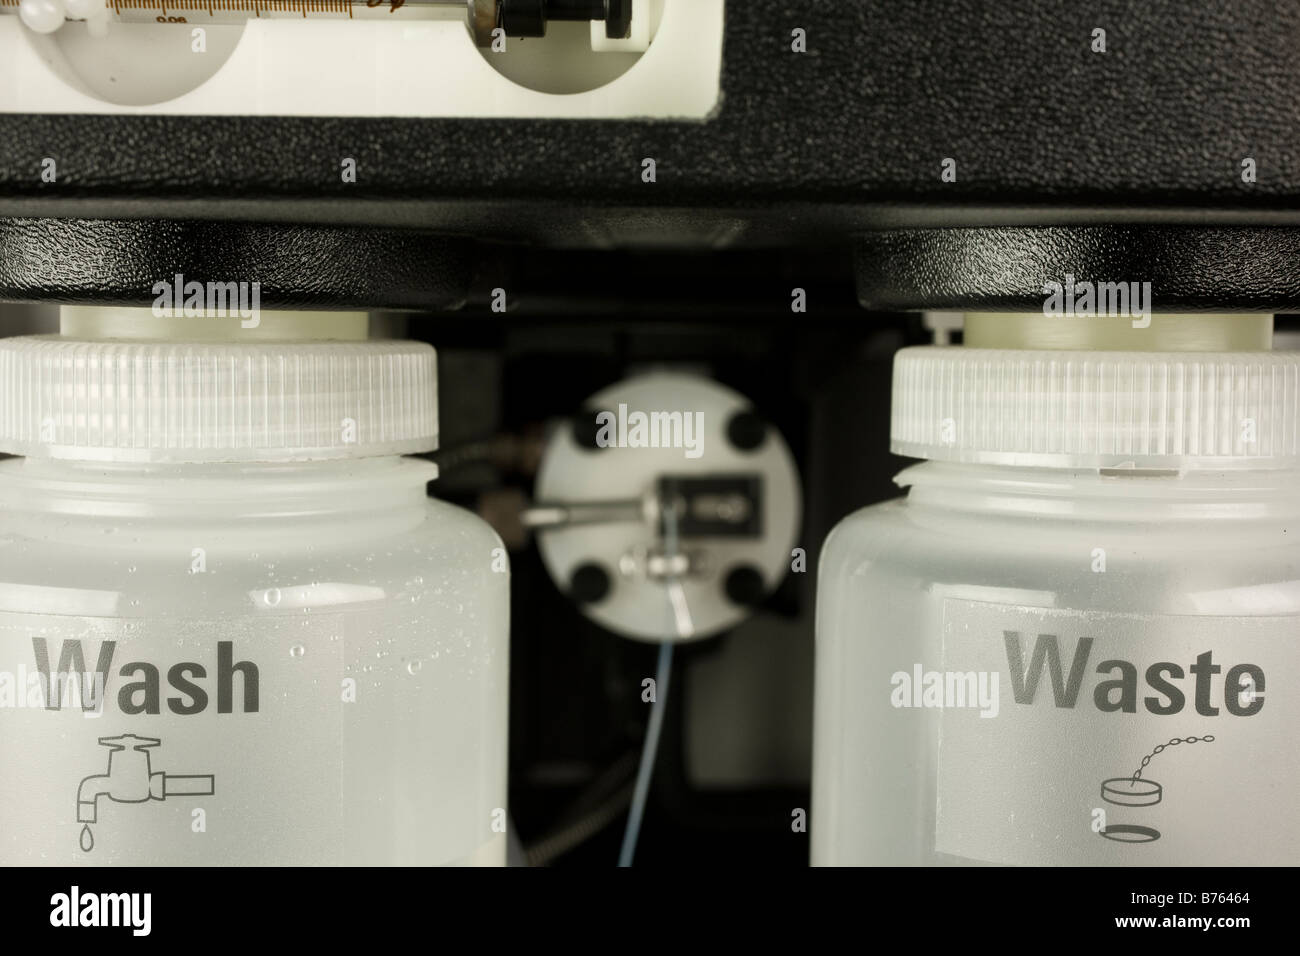 Wash and waste collection vessels for atomic absorption autosampler, - Stock Image